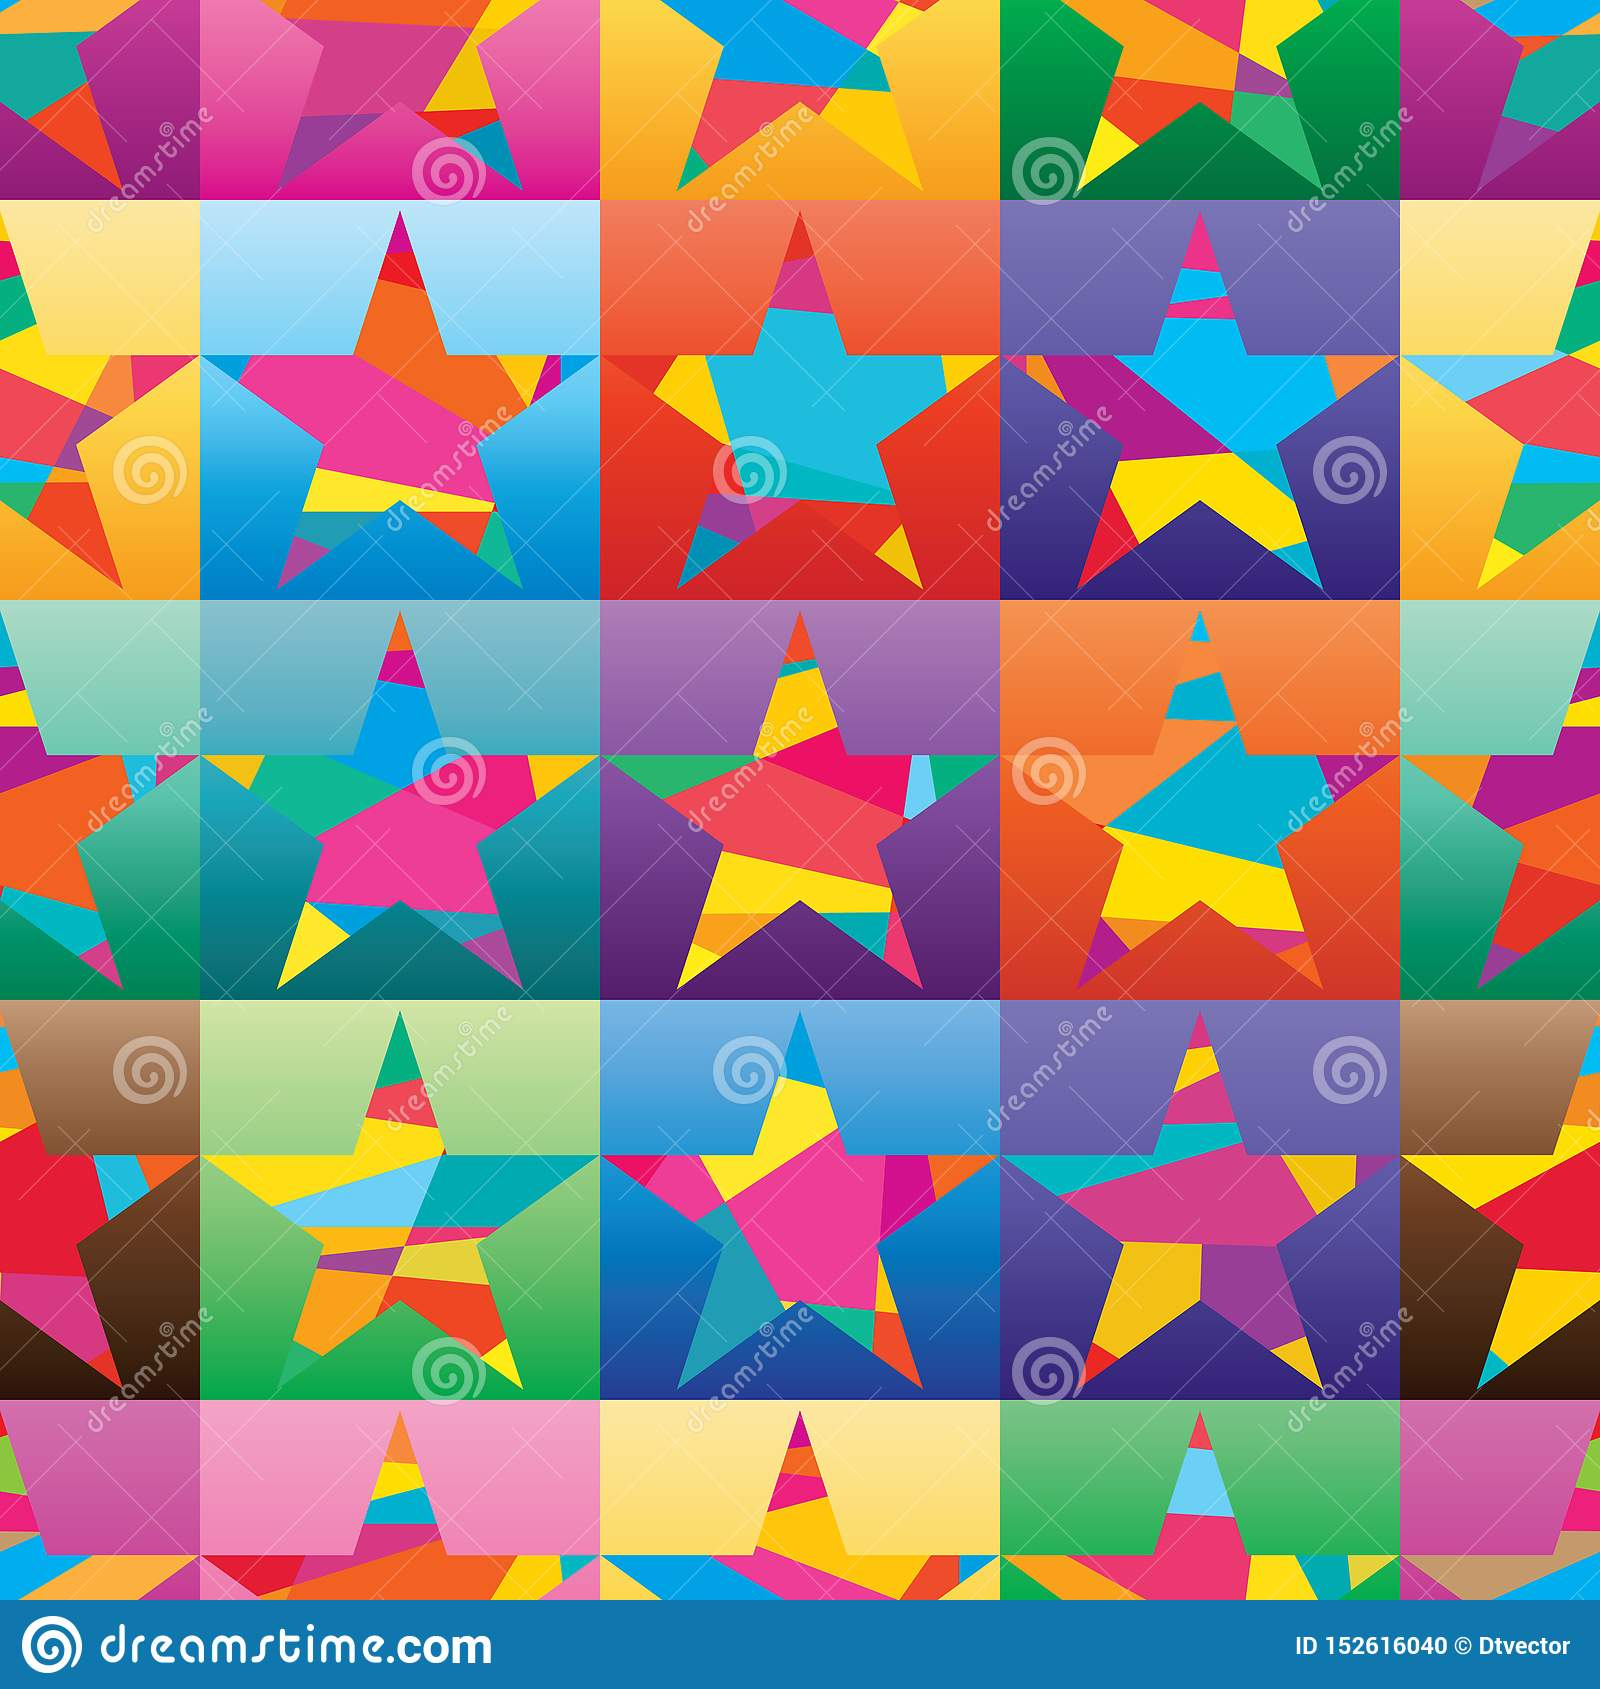 Star flat wear fashion color shirt square colorful seamless pattern